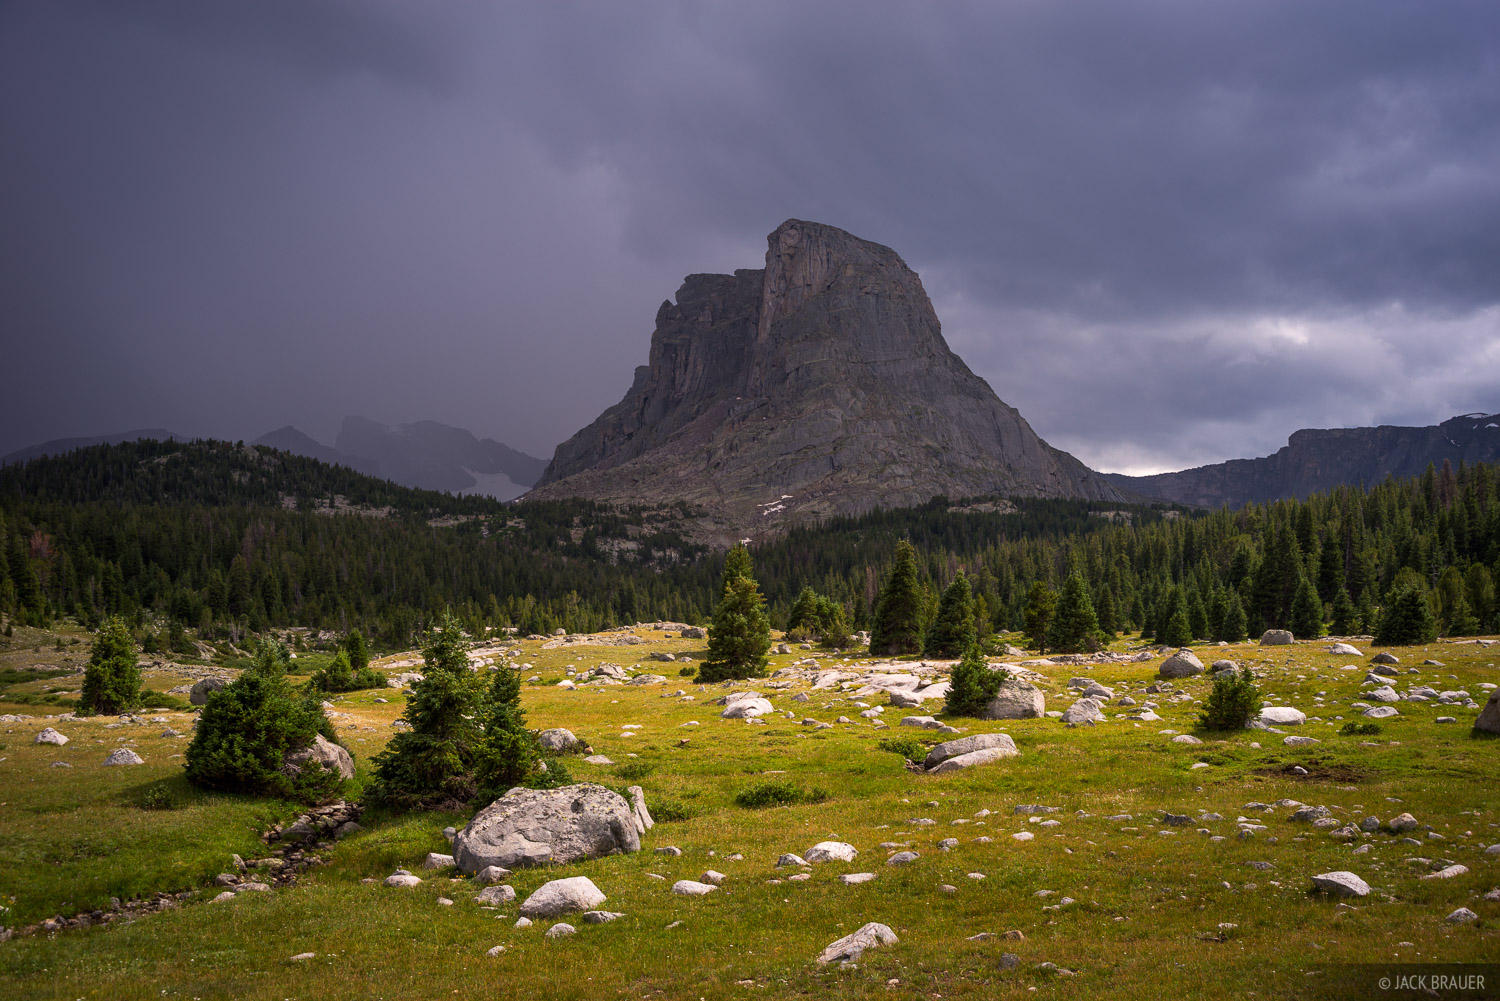 A thunderstorm approaches above Buffalo Head (11,717 ft.).